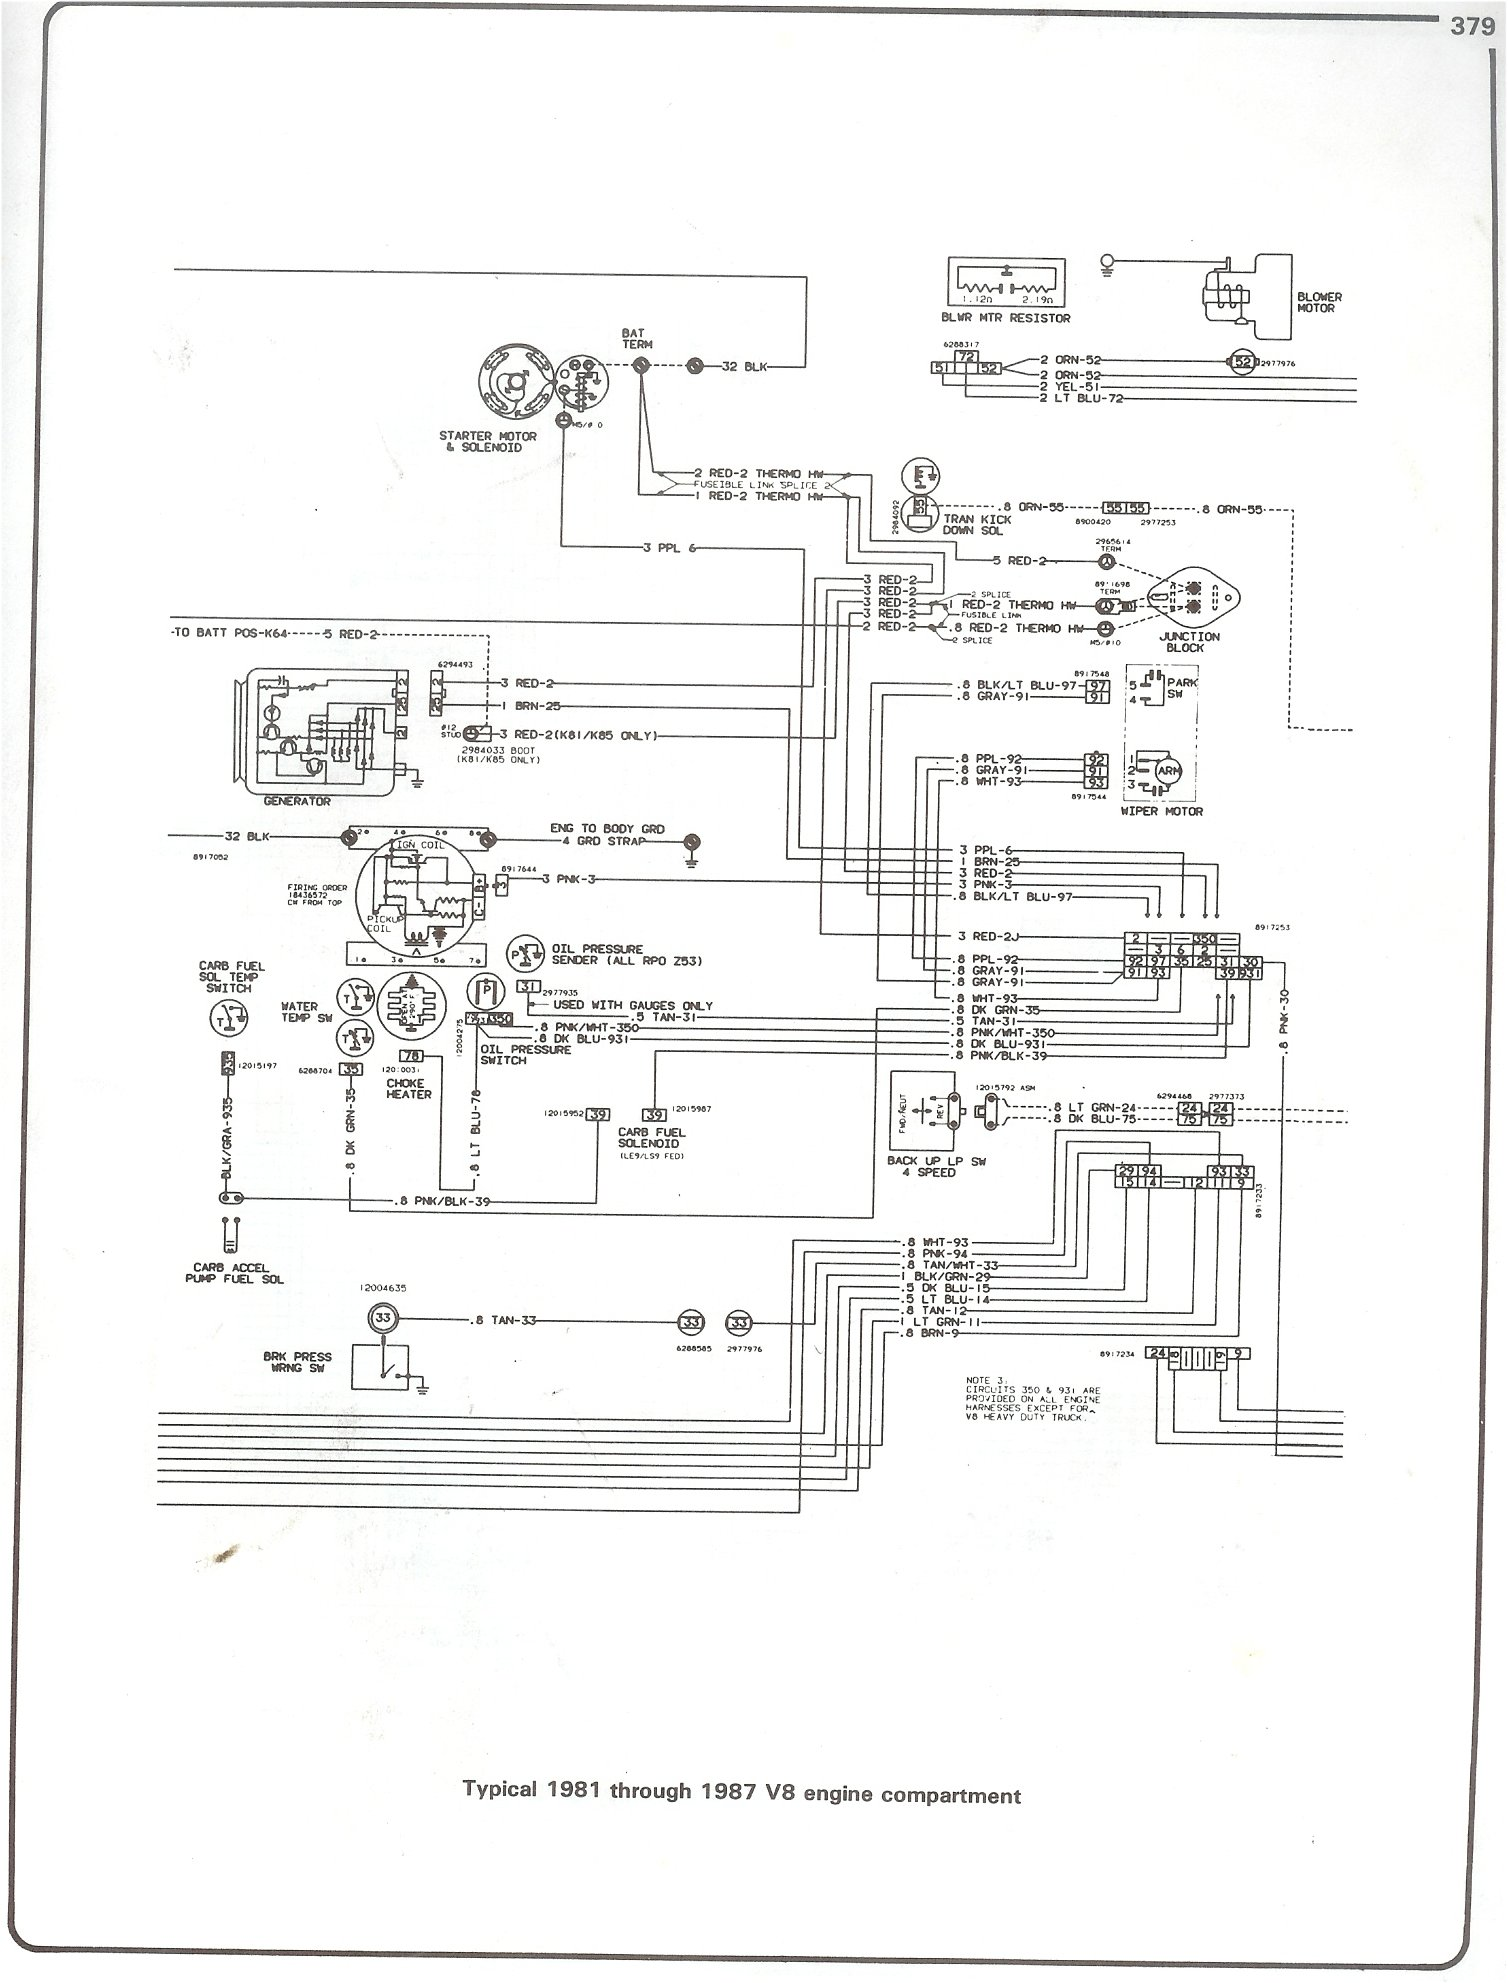 engine wiring diagram 1977 c10 v8 house wiring diagram symbols u2022 rh maxturner co 1965 C10 Wiring-Diagram 1965 C10 Wiring-Diagram